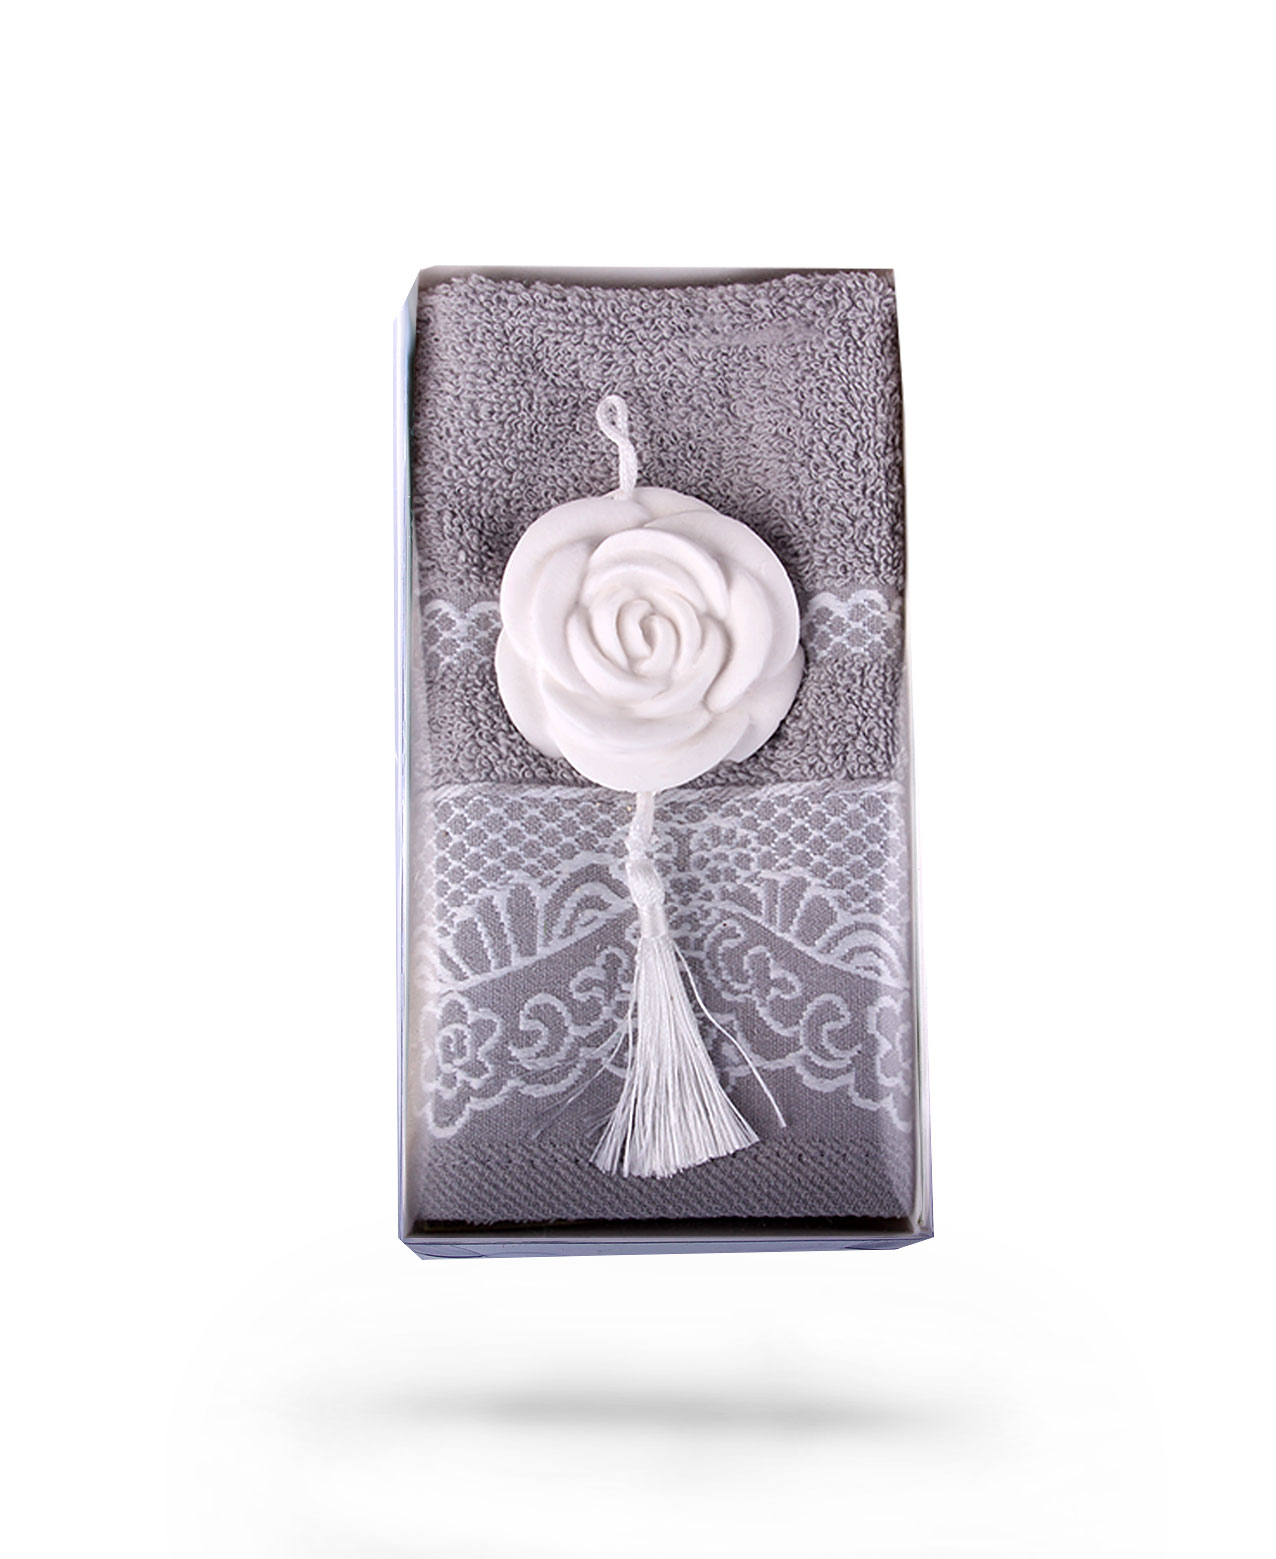 Mink Towel & White Soap Scented Stone Gift Set